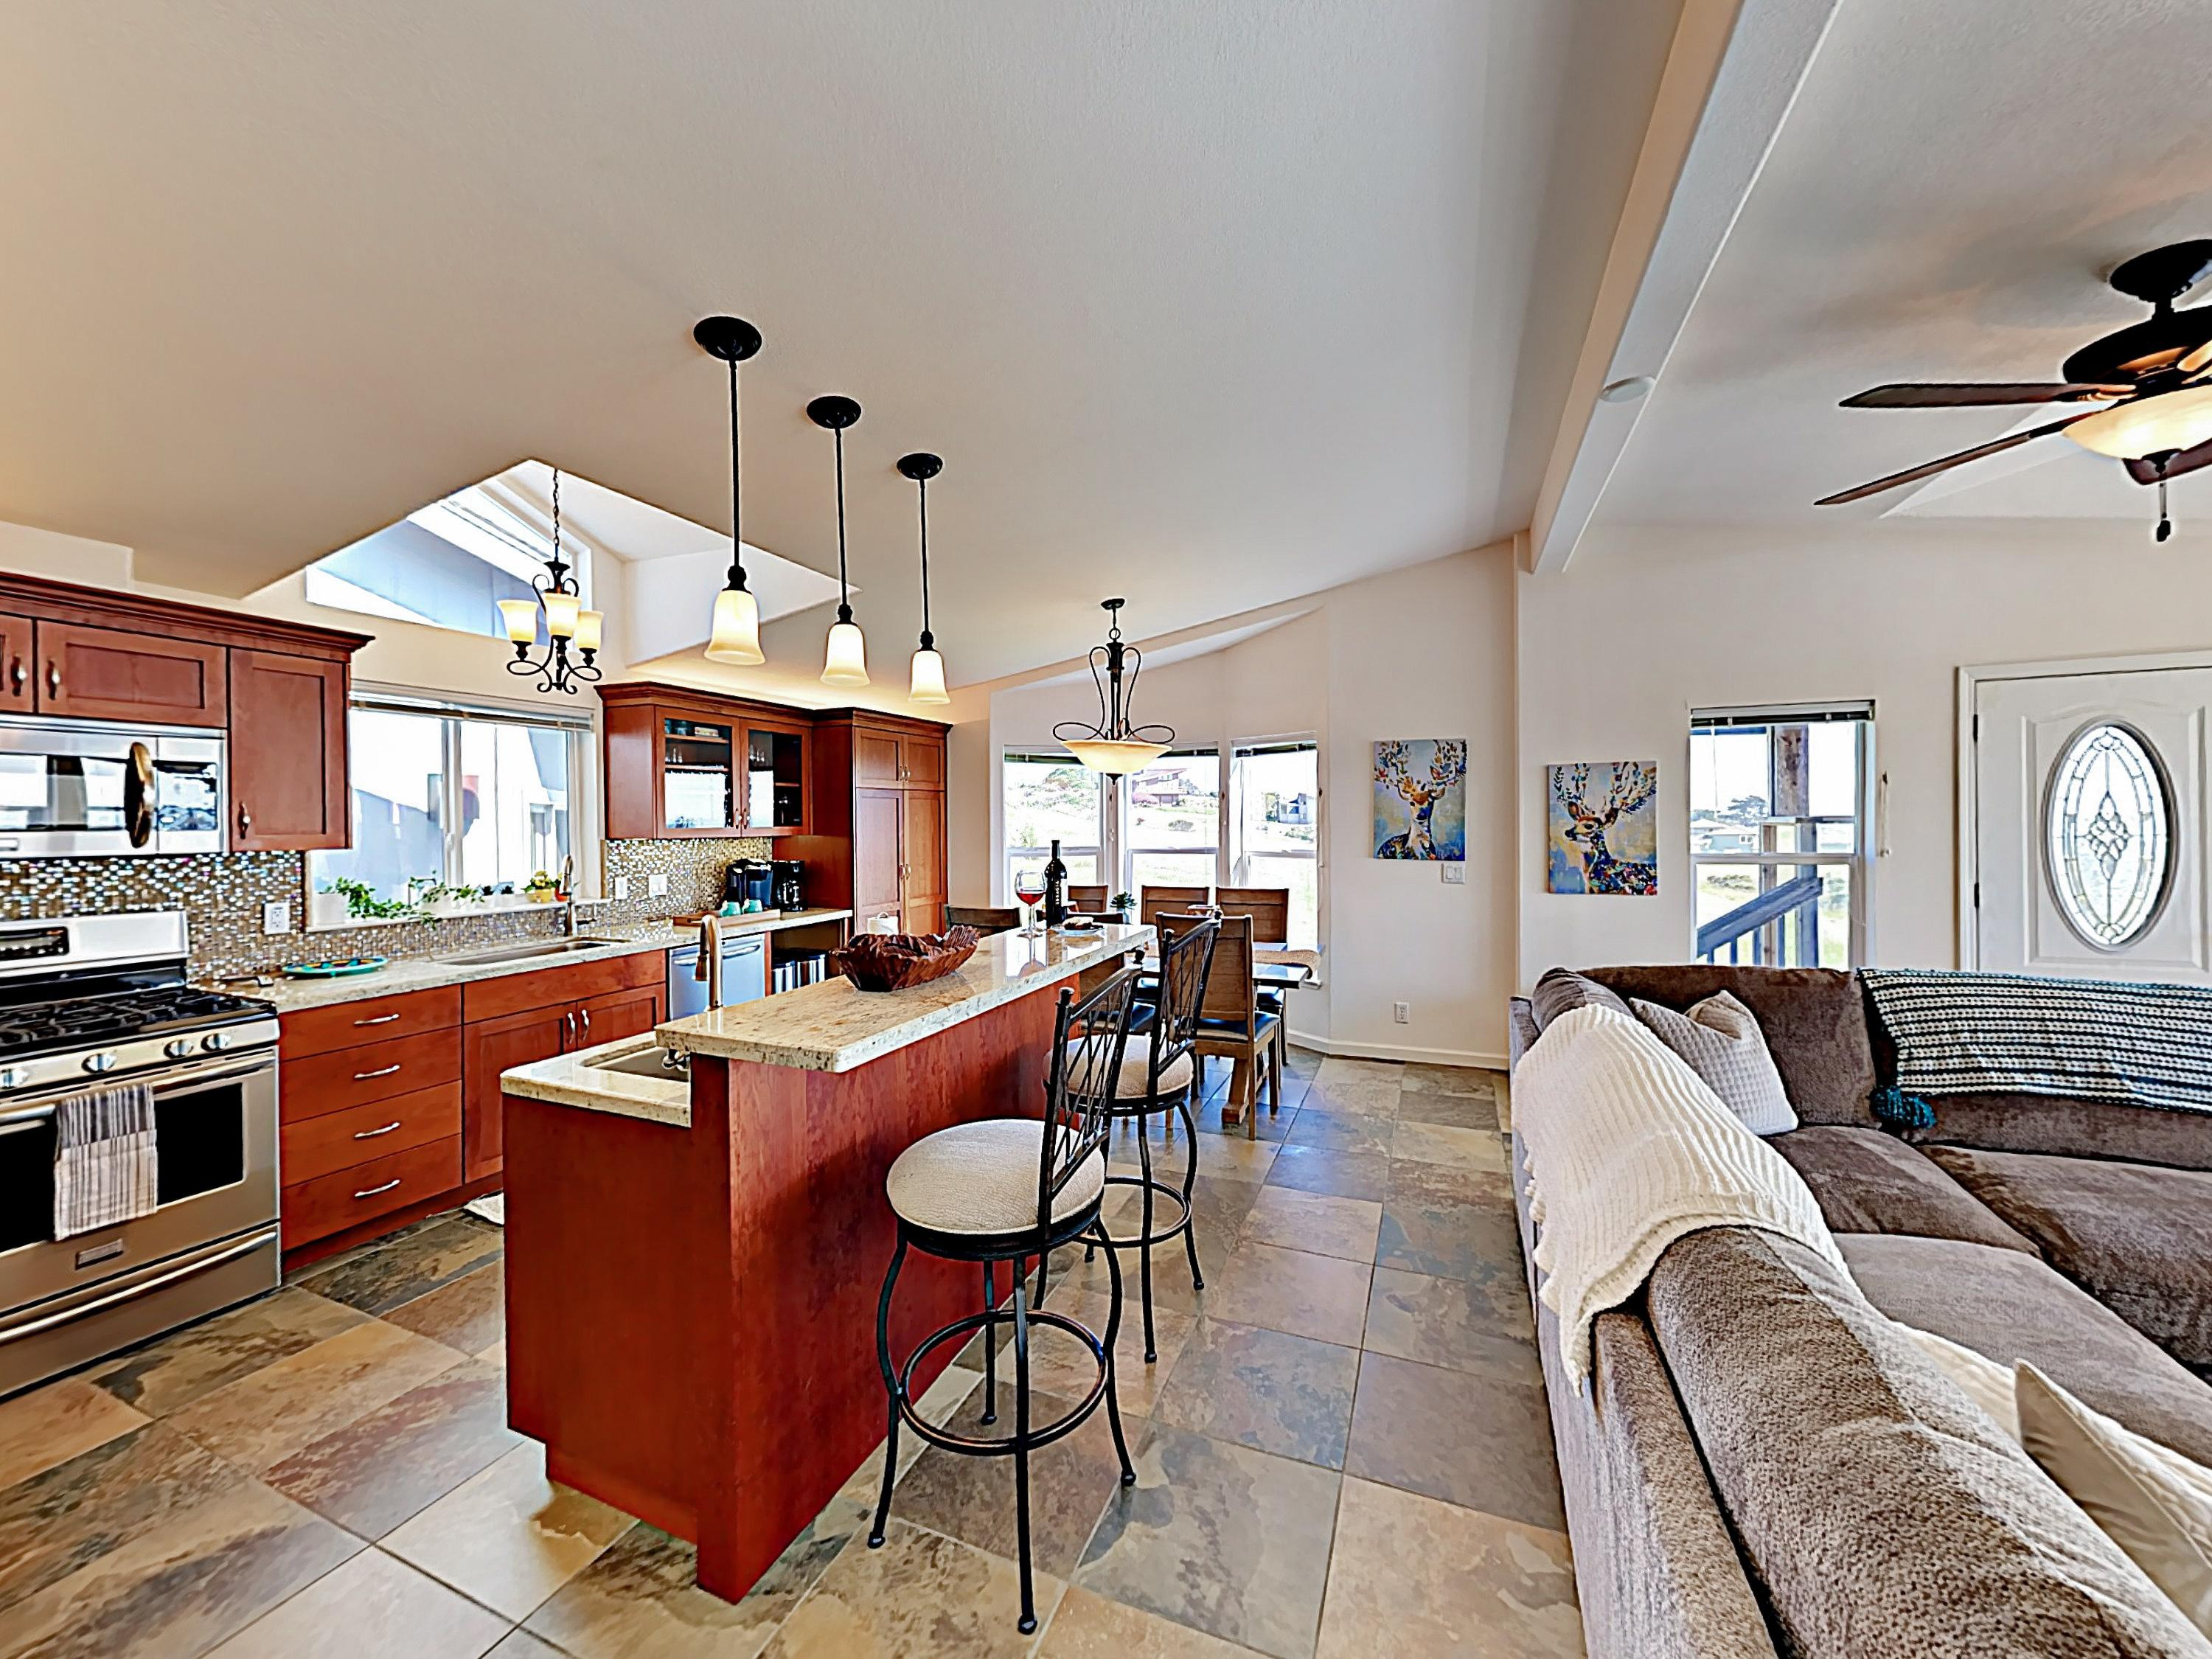 A recently remodeled kitchen offers a full suite of stainless steel appliances.